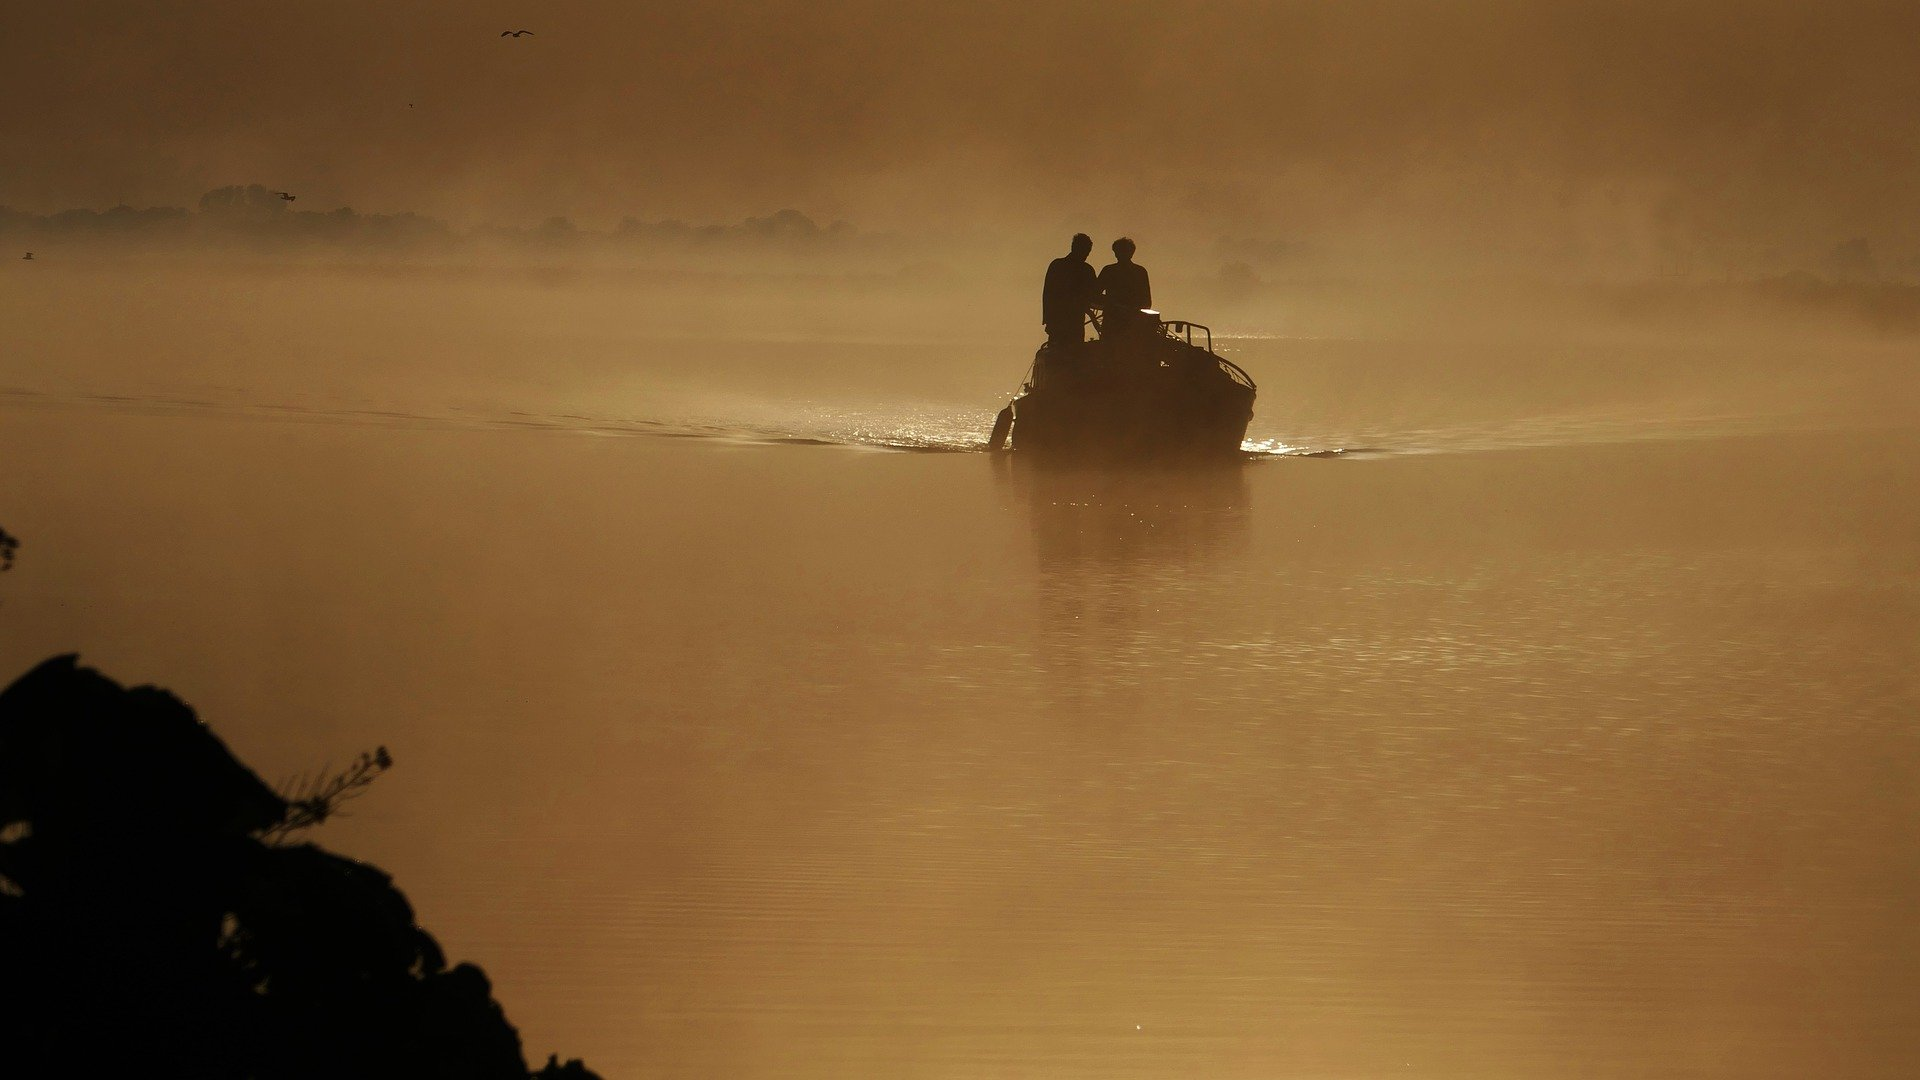 Pictured - Two individuals on a boat in the river channel | Photo: Getty Images